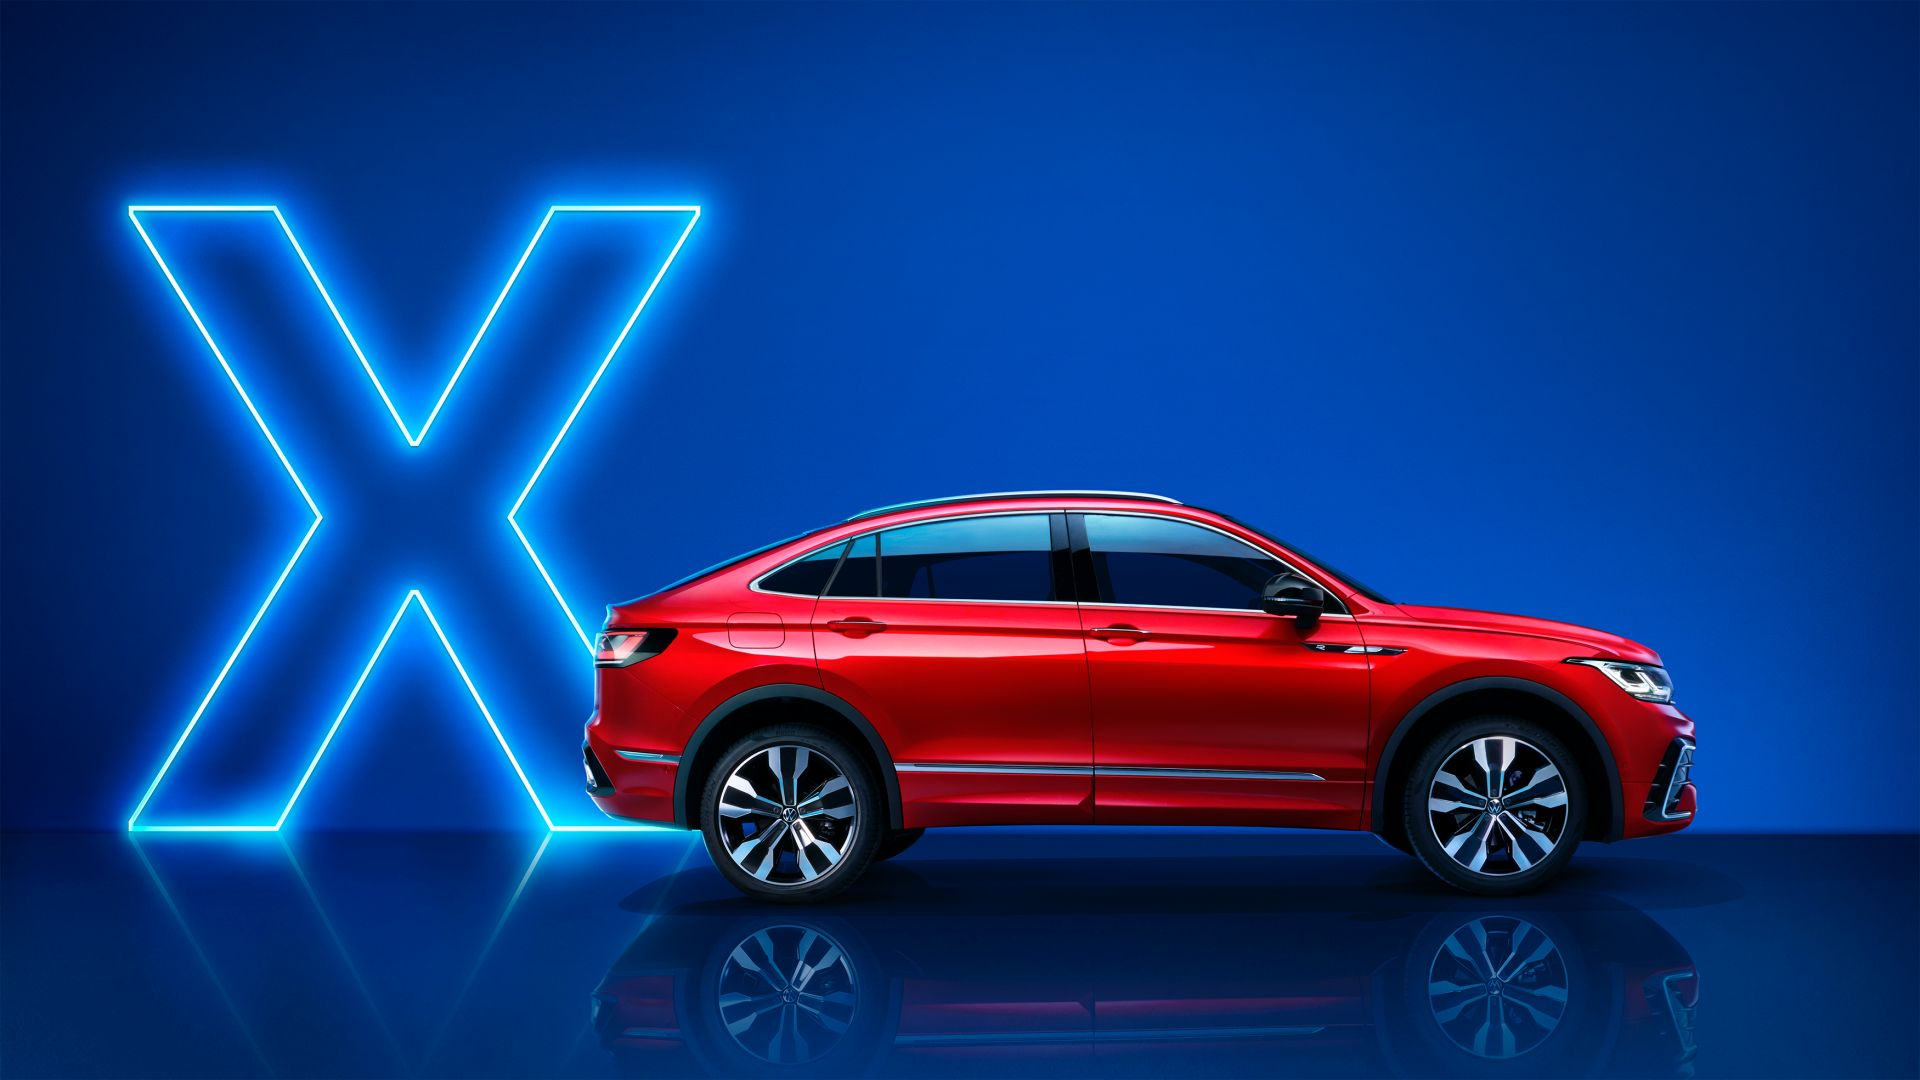 2021 Volkswagen Tiguan X Suv Coupe Revealed With R Line Exterior Package Autoevolution